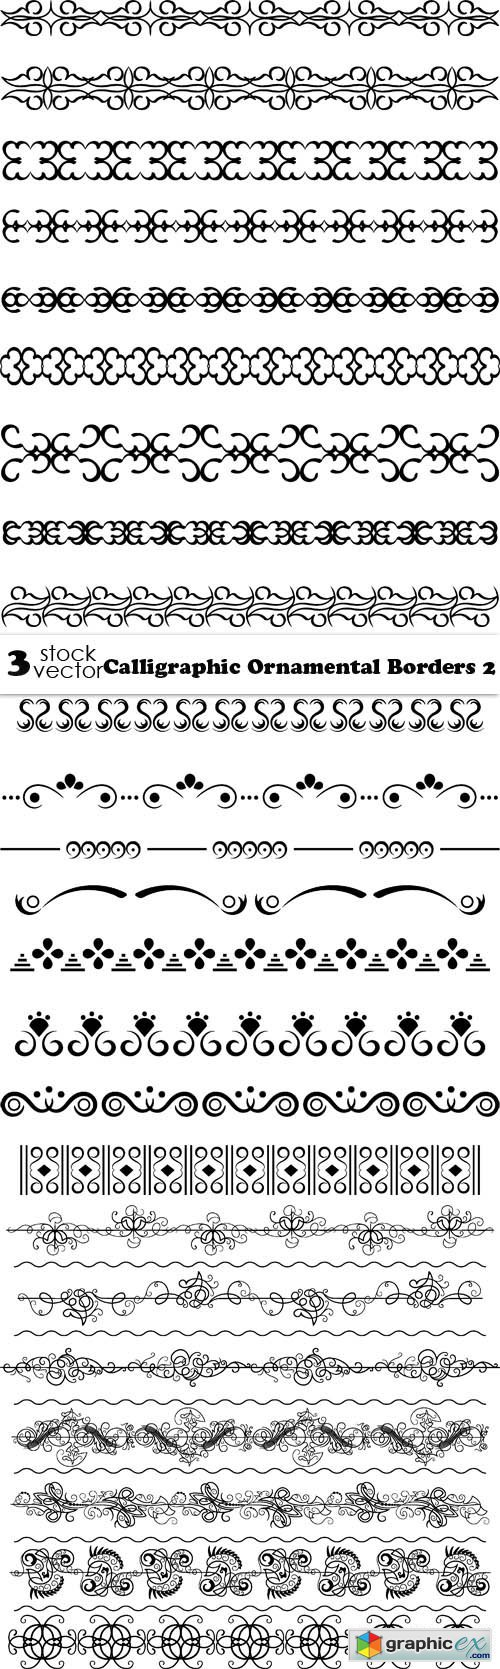 Vectors - Calligraphic Ornamental Borders 2